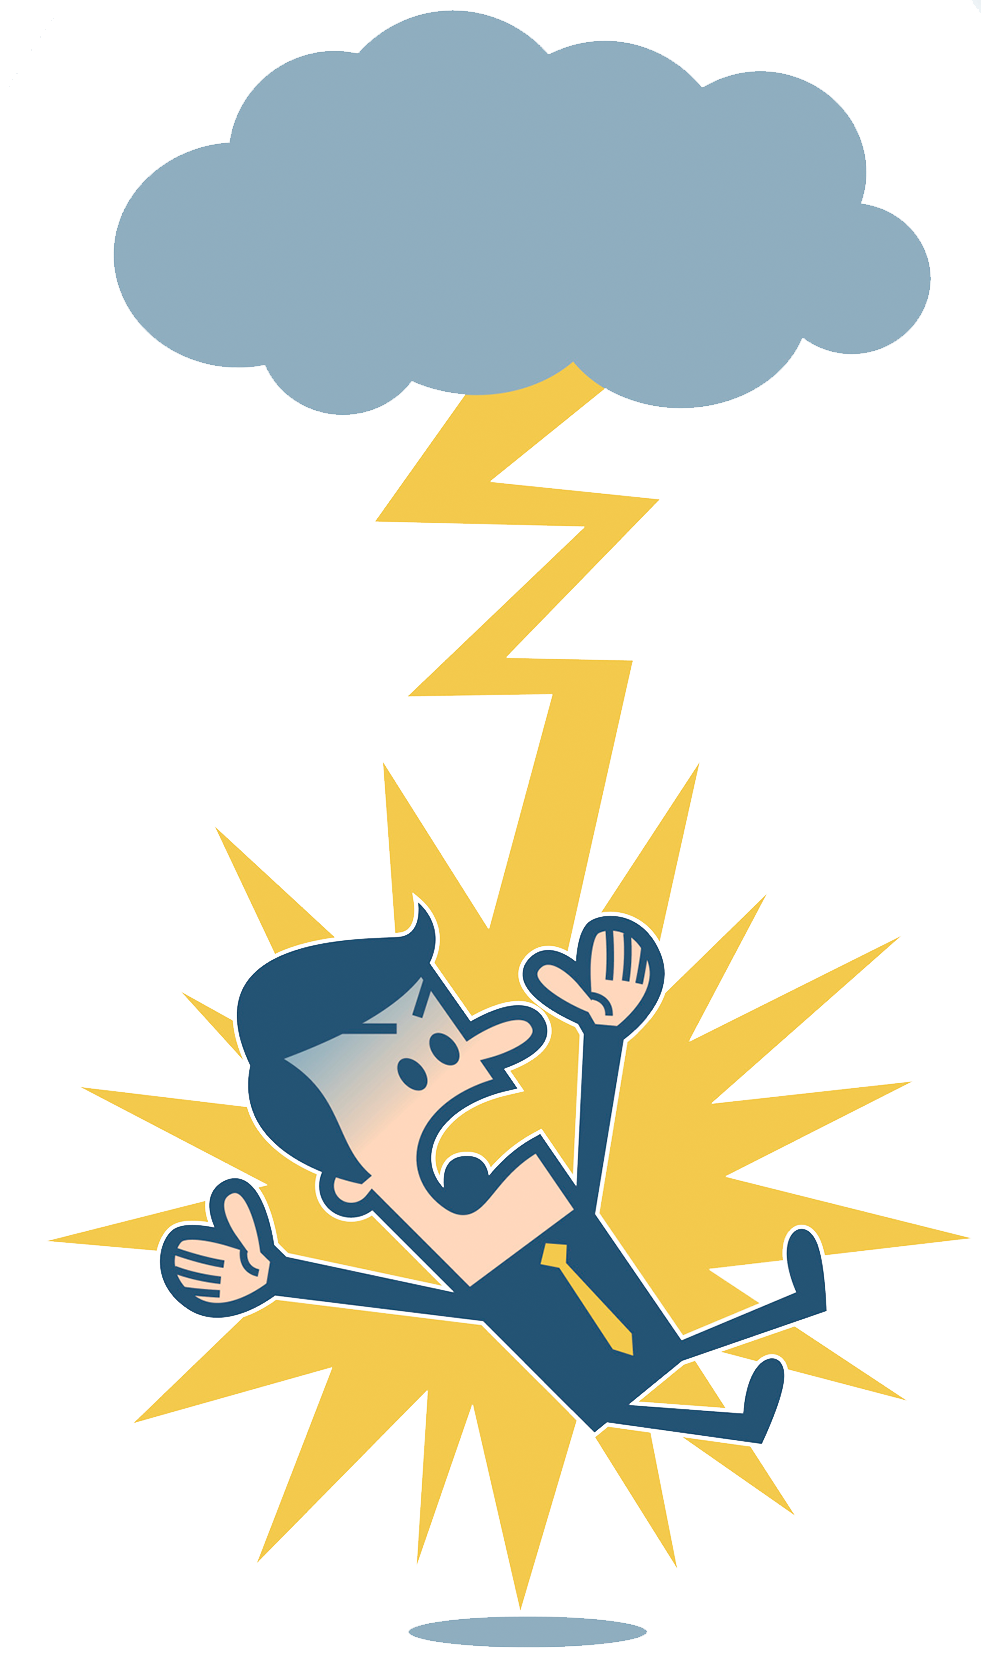 Lightning electrical injury clip. Electricity clipart electricity danger